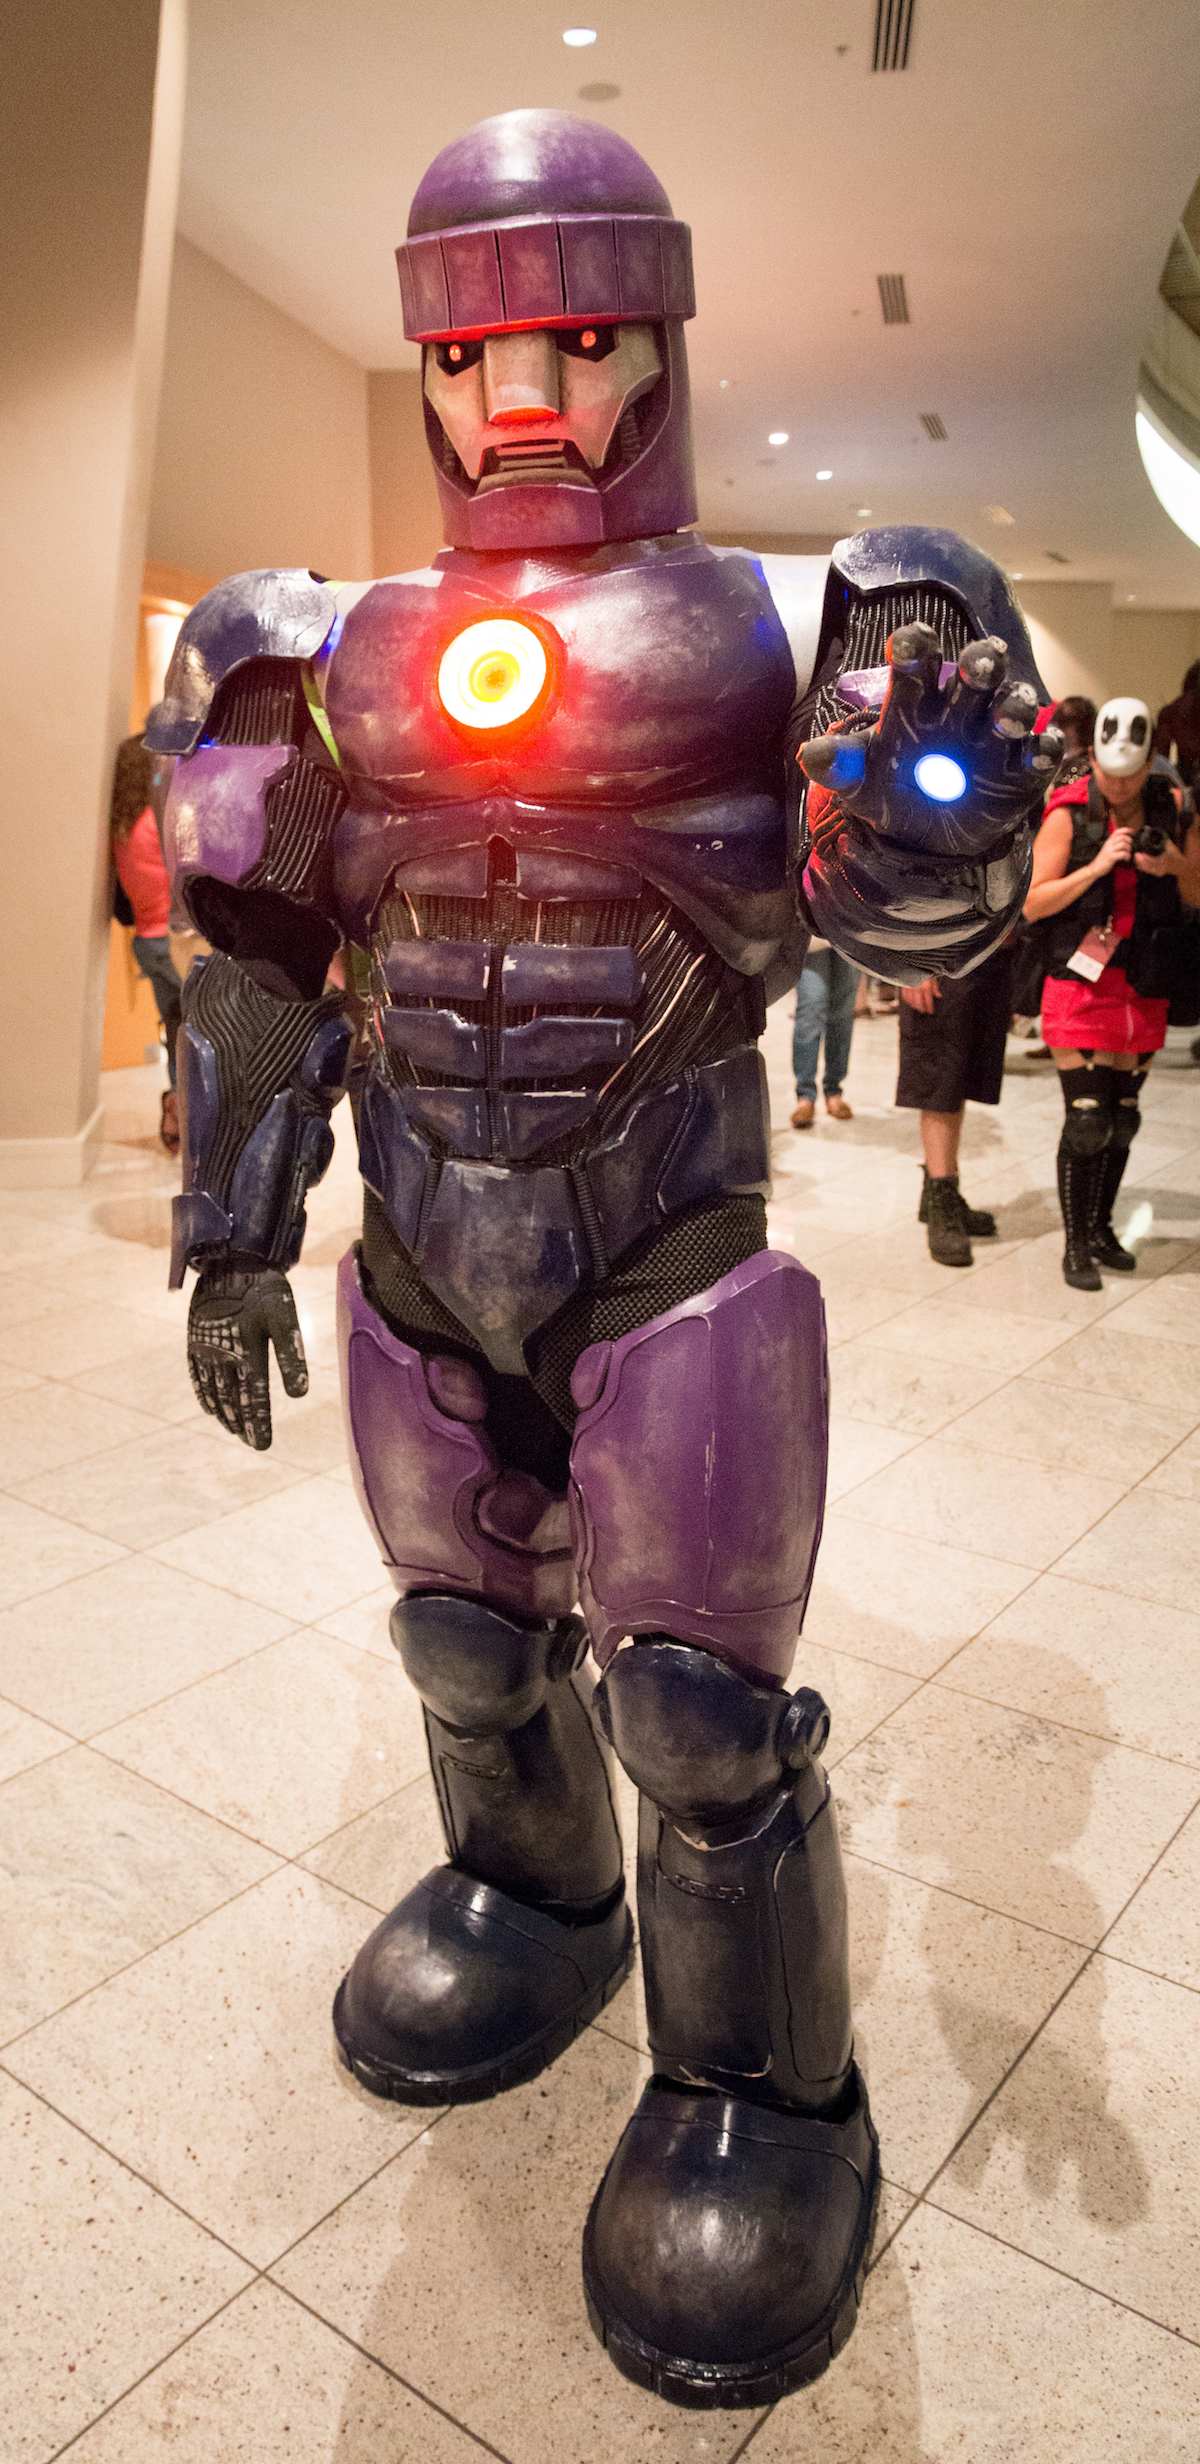 25 X-Men That Should Be Impossible To Cosplay (But Fans Somehow Still Pulled Off)